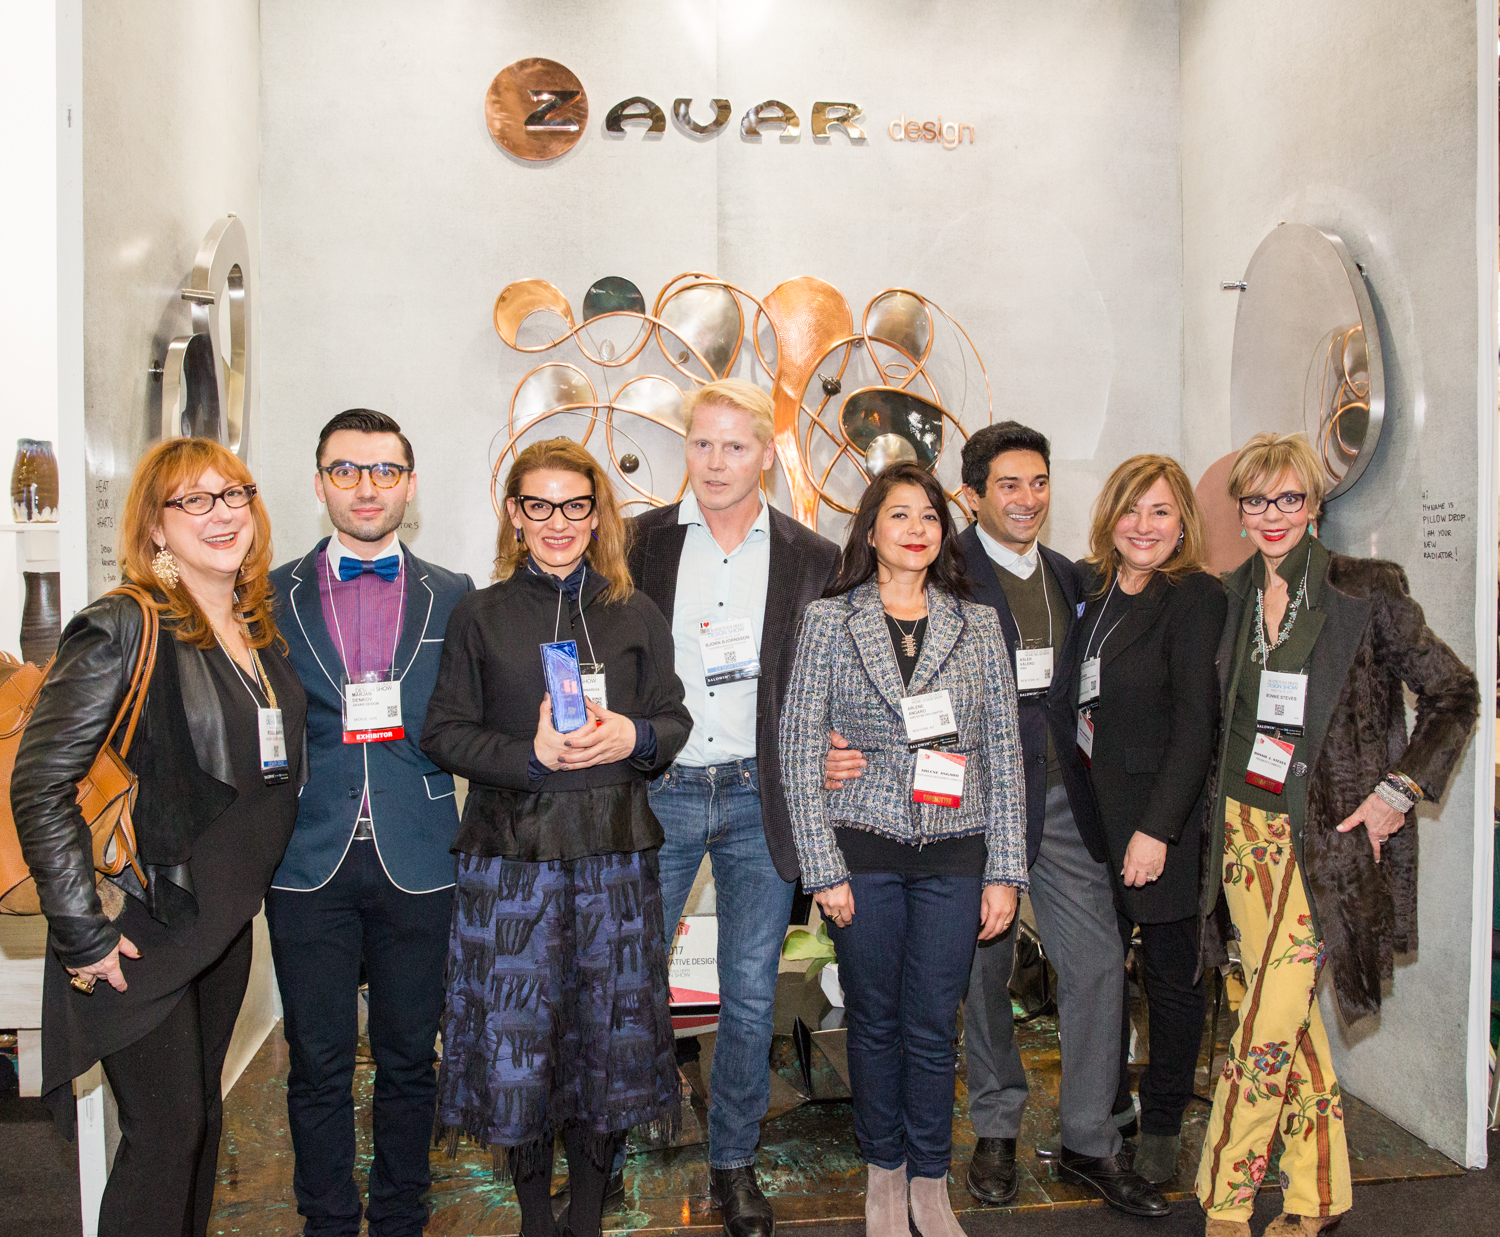 Best Innovative Design: Zavar Design